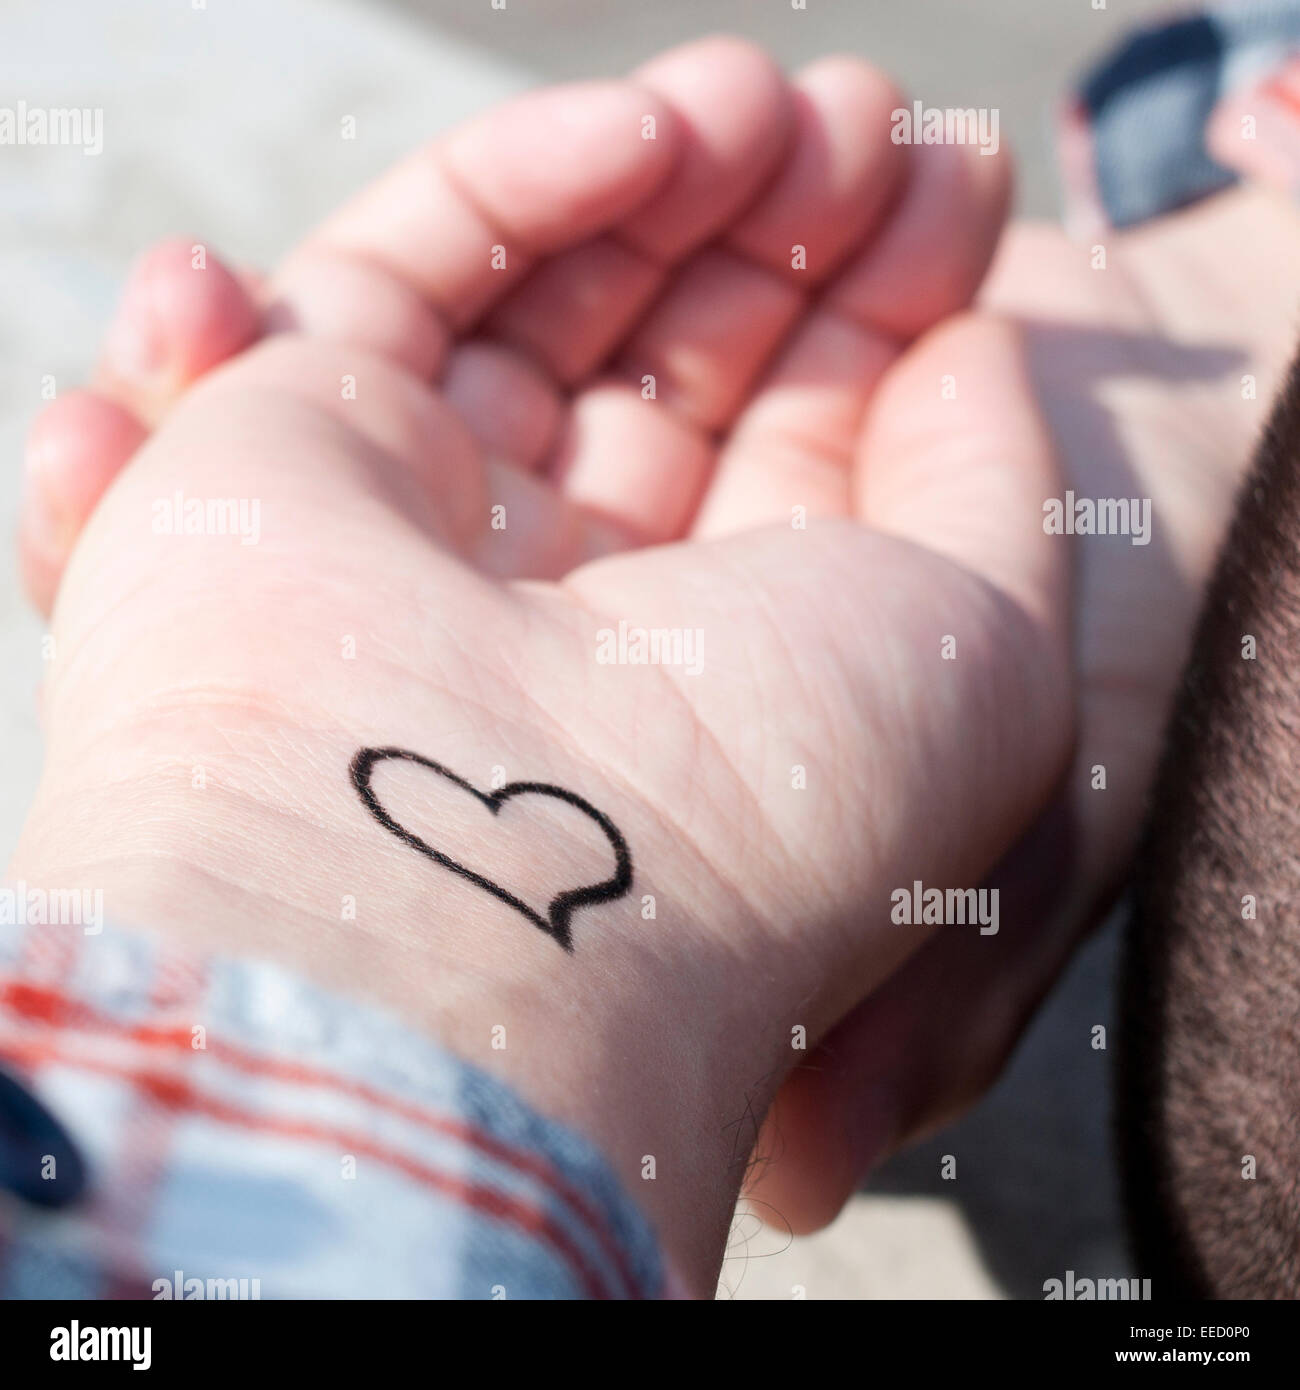 closeup of the wrist of a young man with a heart tattooed in it - Stock Image